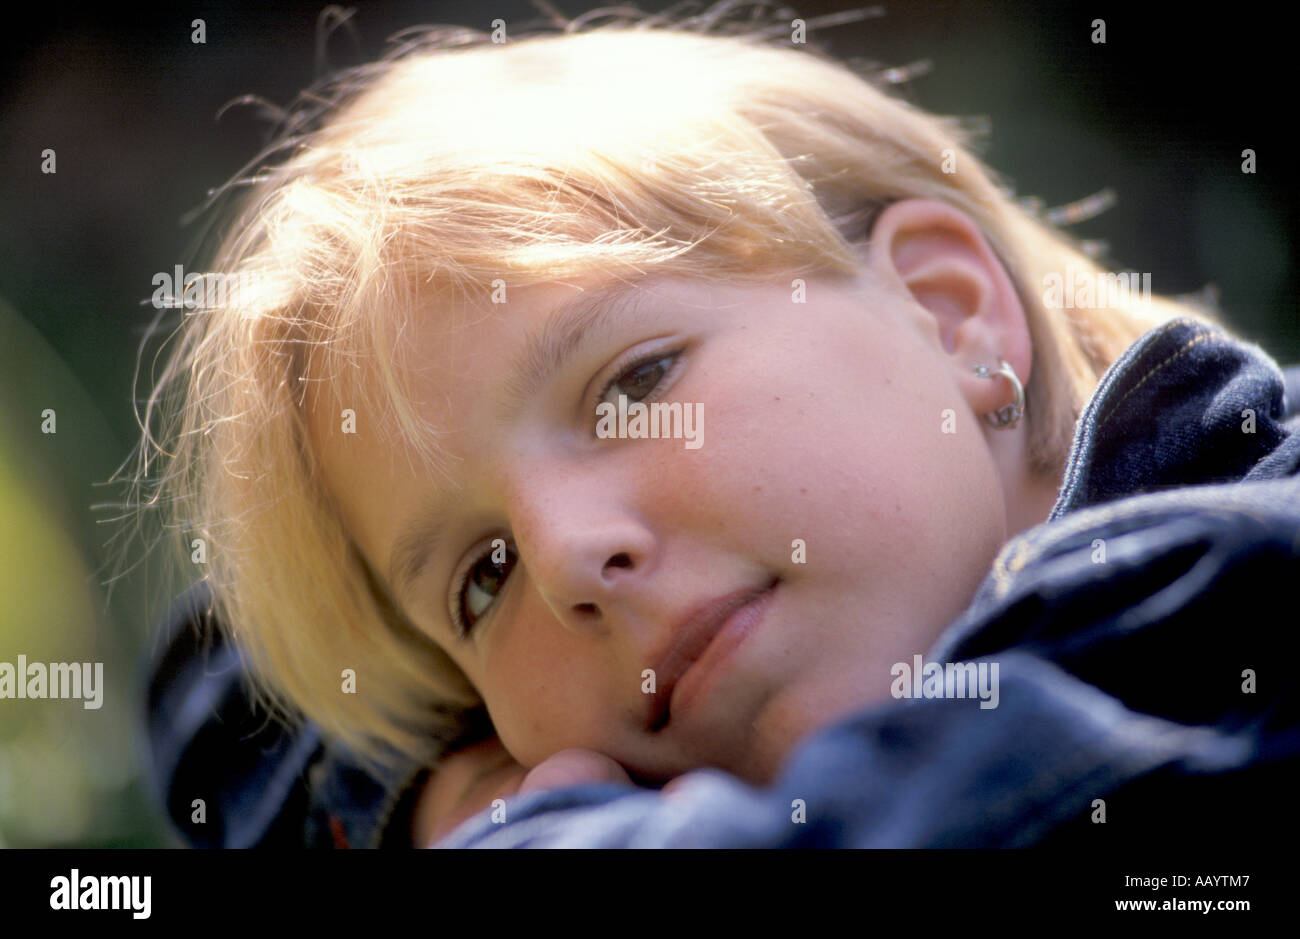 Pondering teenage girl - Stock Image